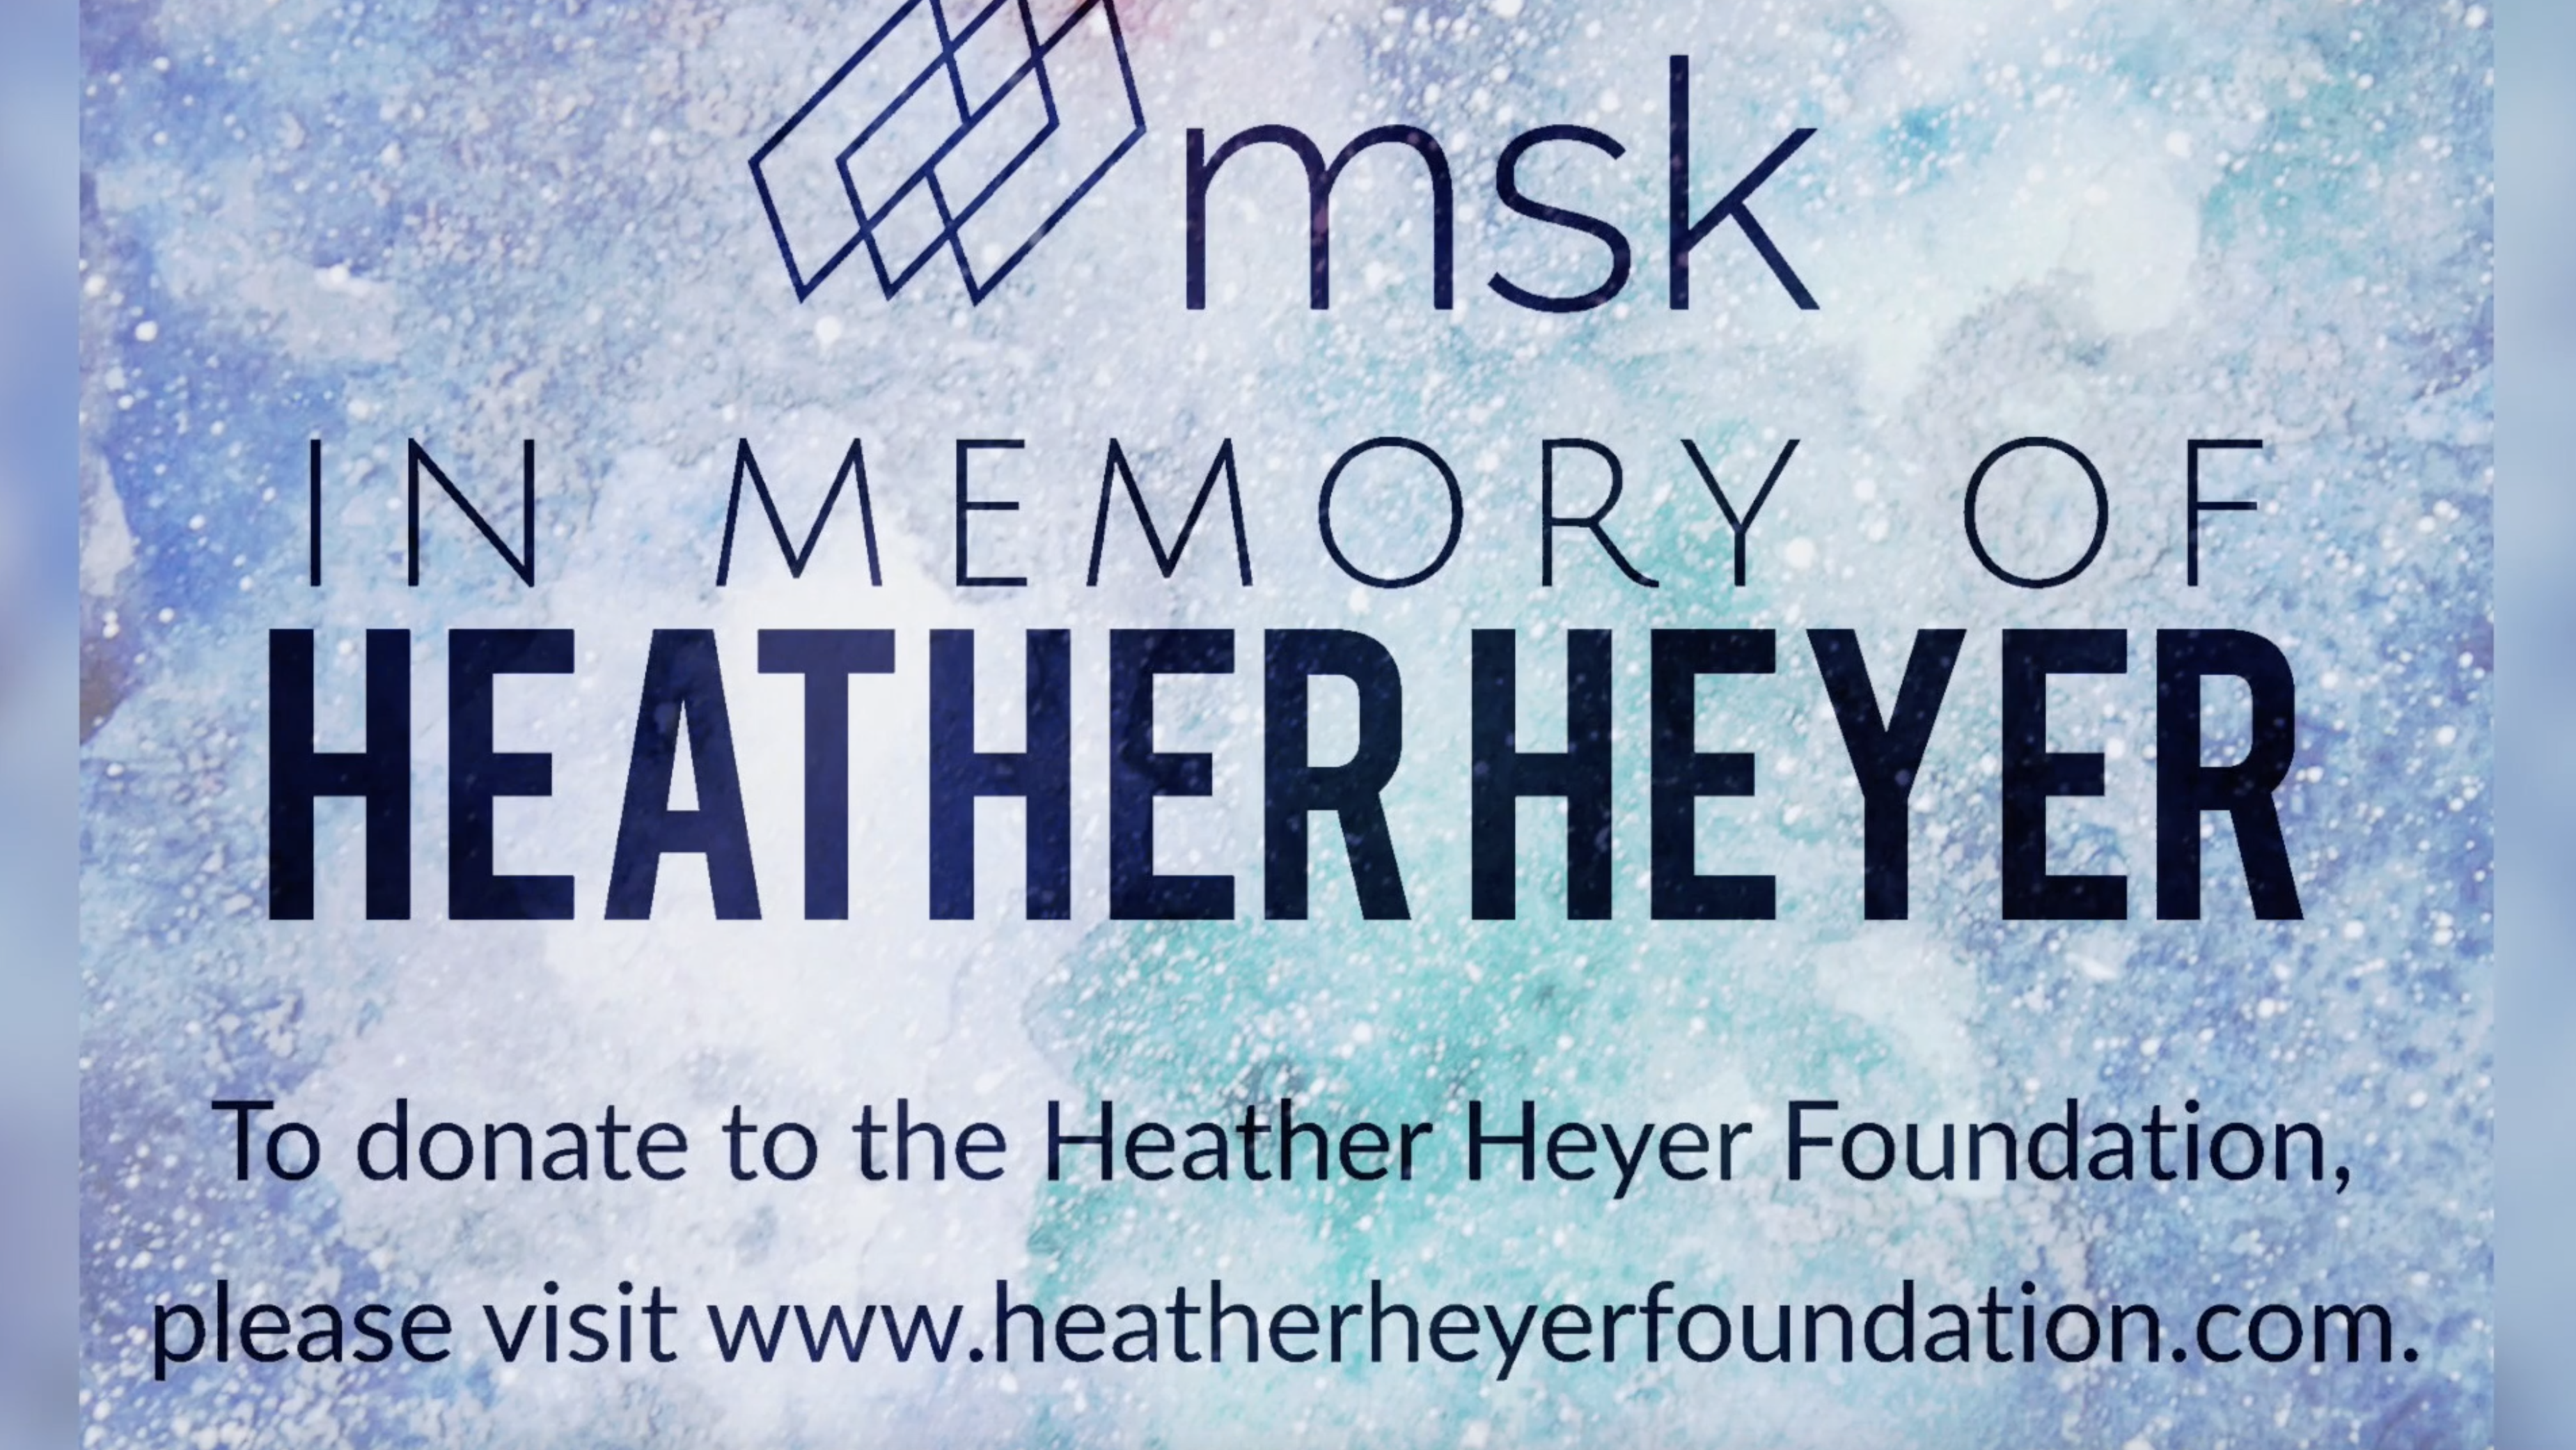 MSK in Support of the Heather Heyer Foundation